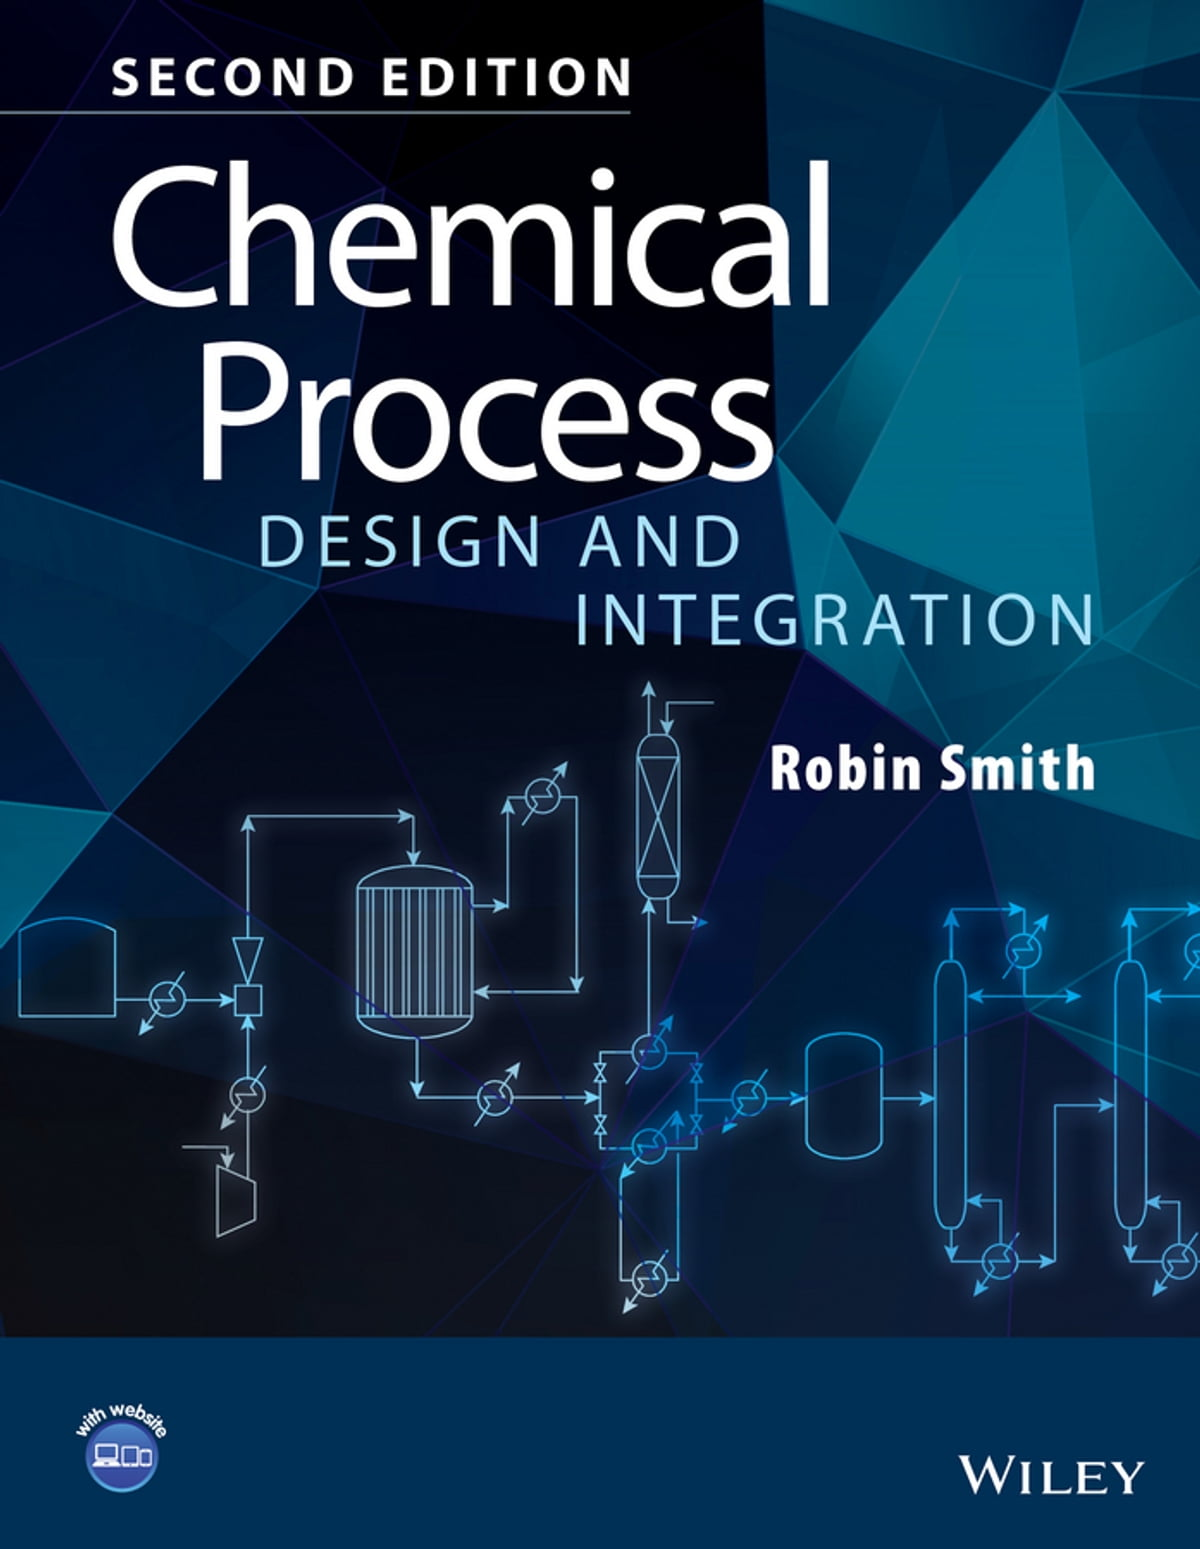 Chemical Process Design And Integration Ebook By Robin Smith 9781118699089 Rakuten Kobo United States